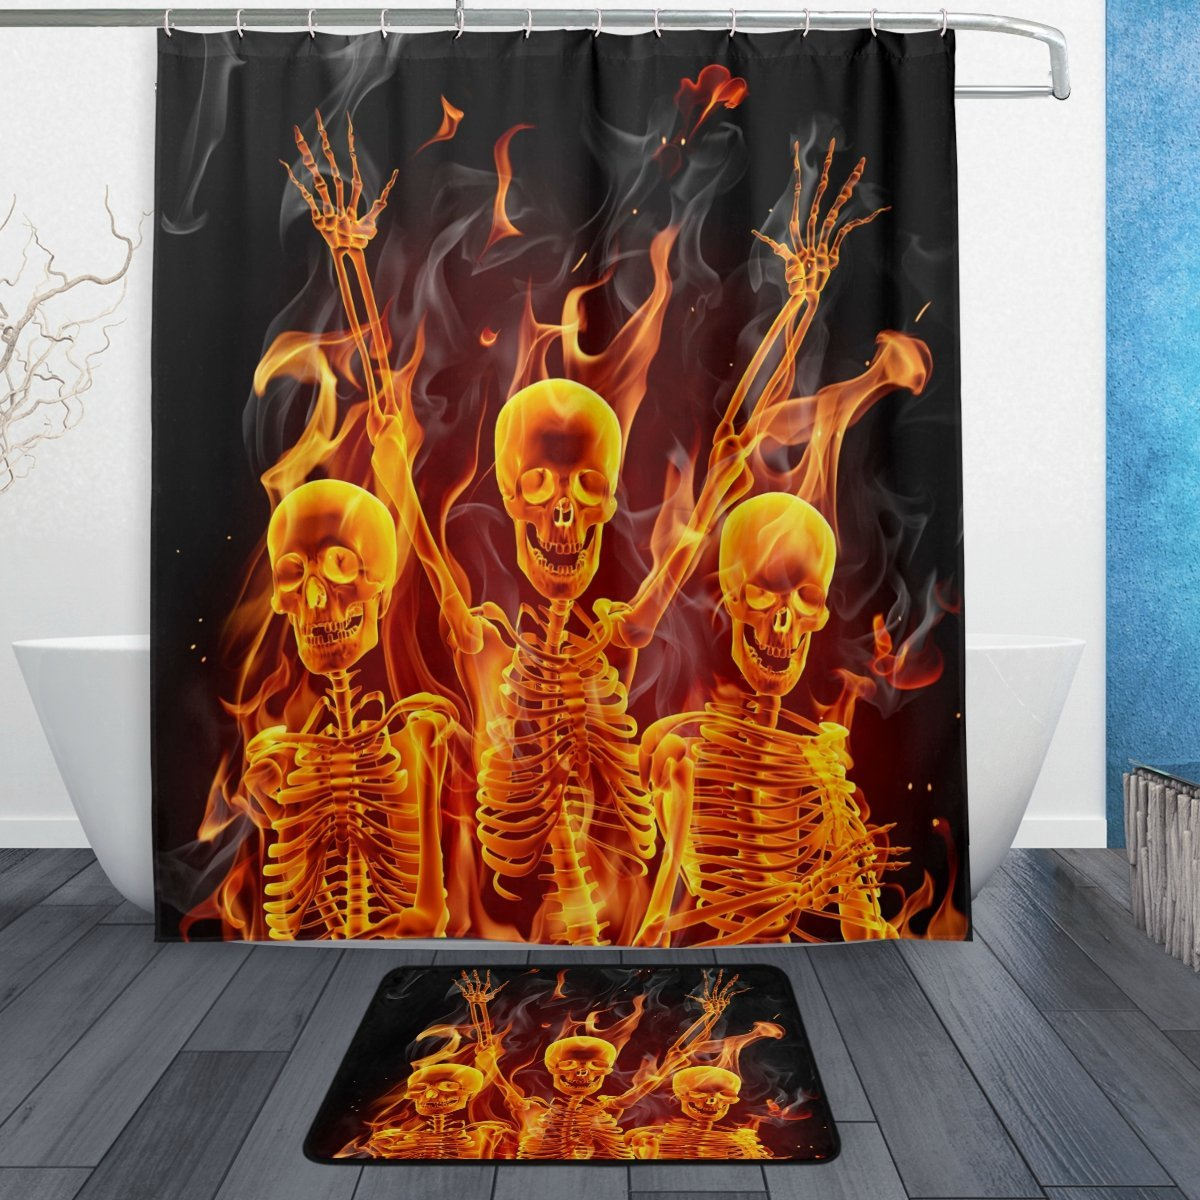 Buy Skeleton Shower Curtain And Get Free Shipping On AliExpress